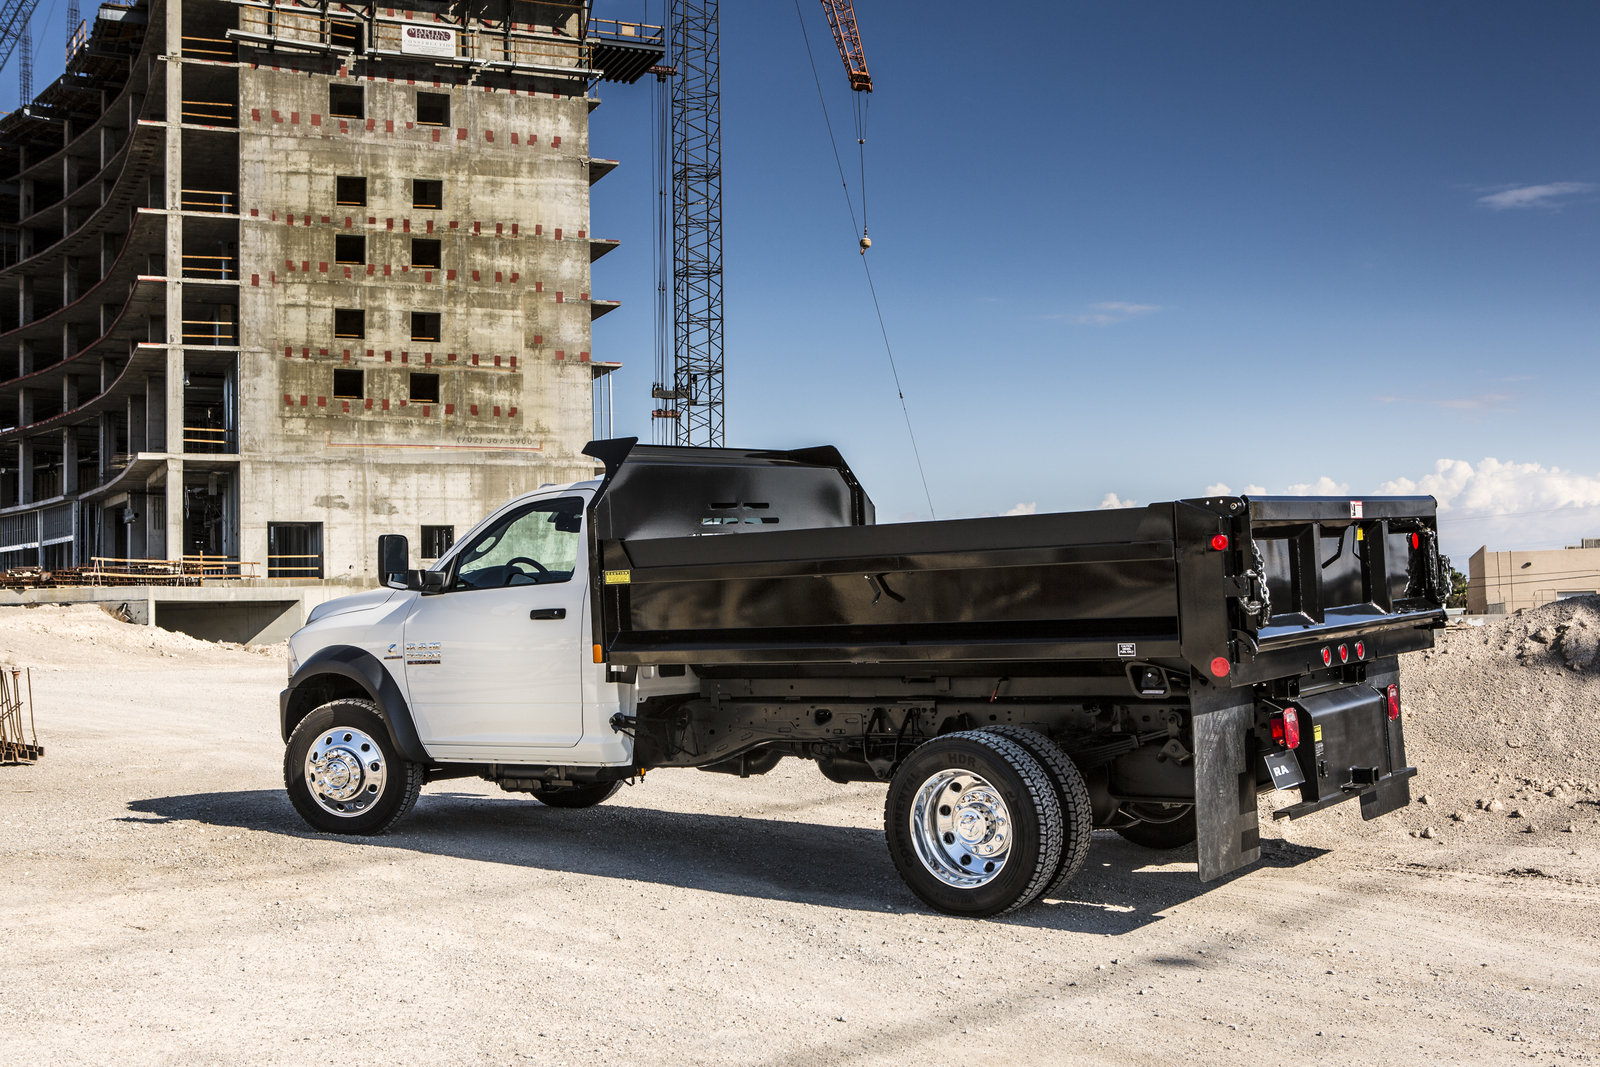 2014 Ram 4500/5500 Chassis Cab | Top Speed